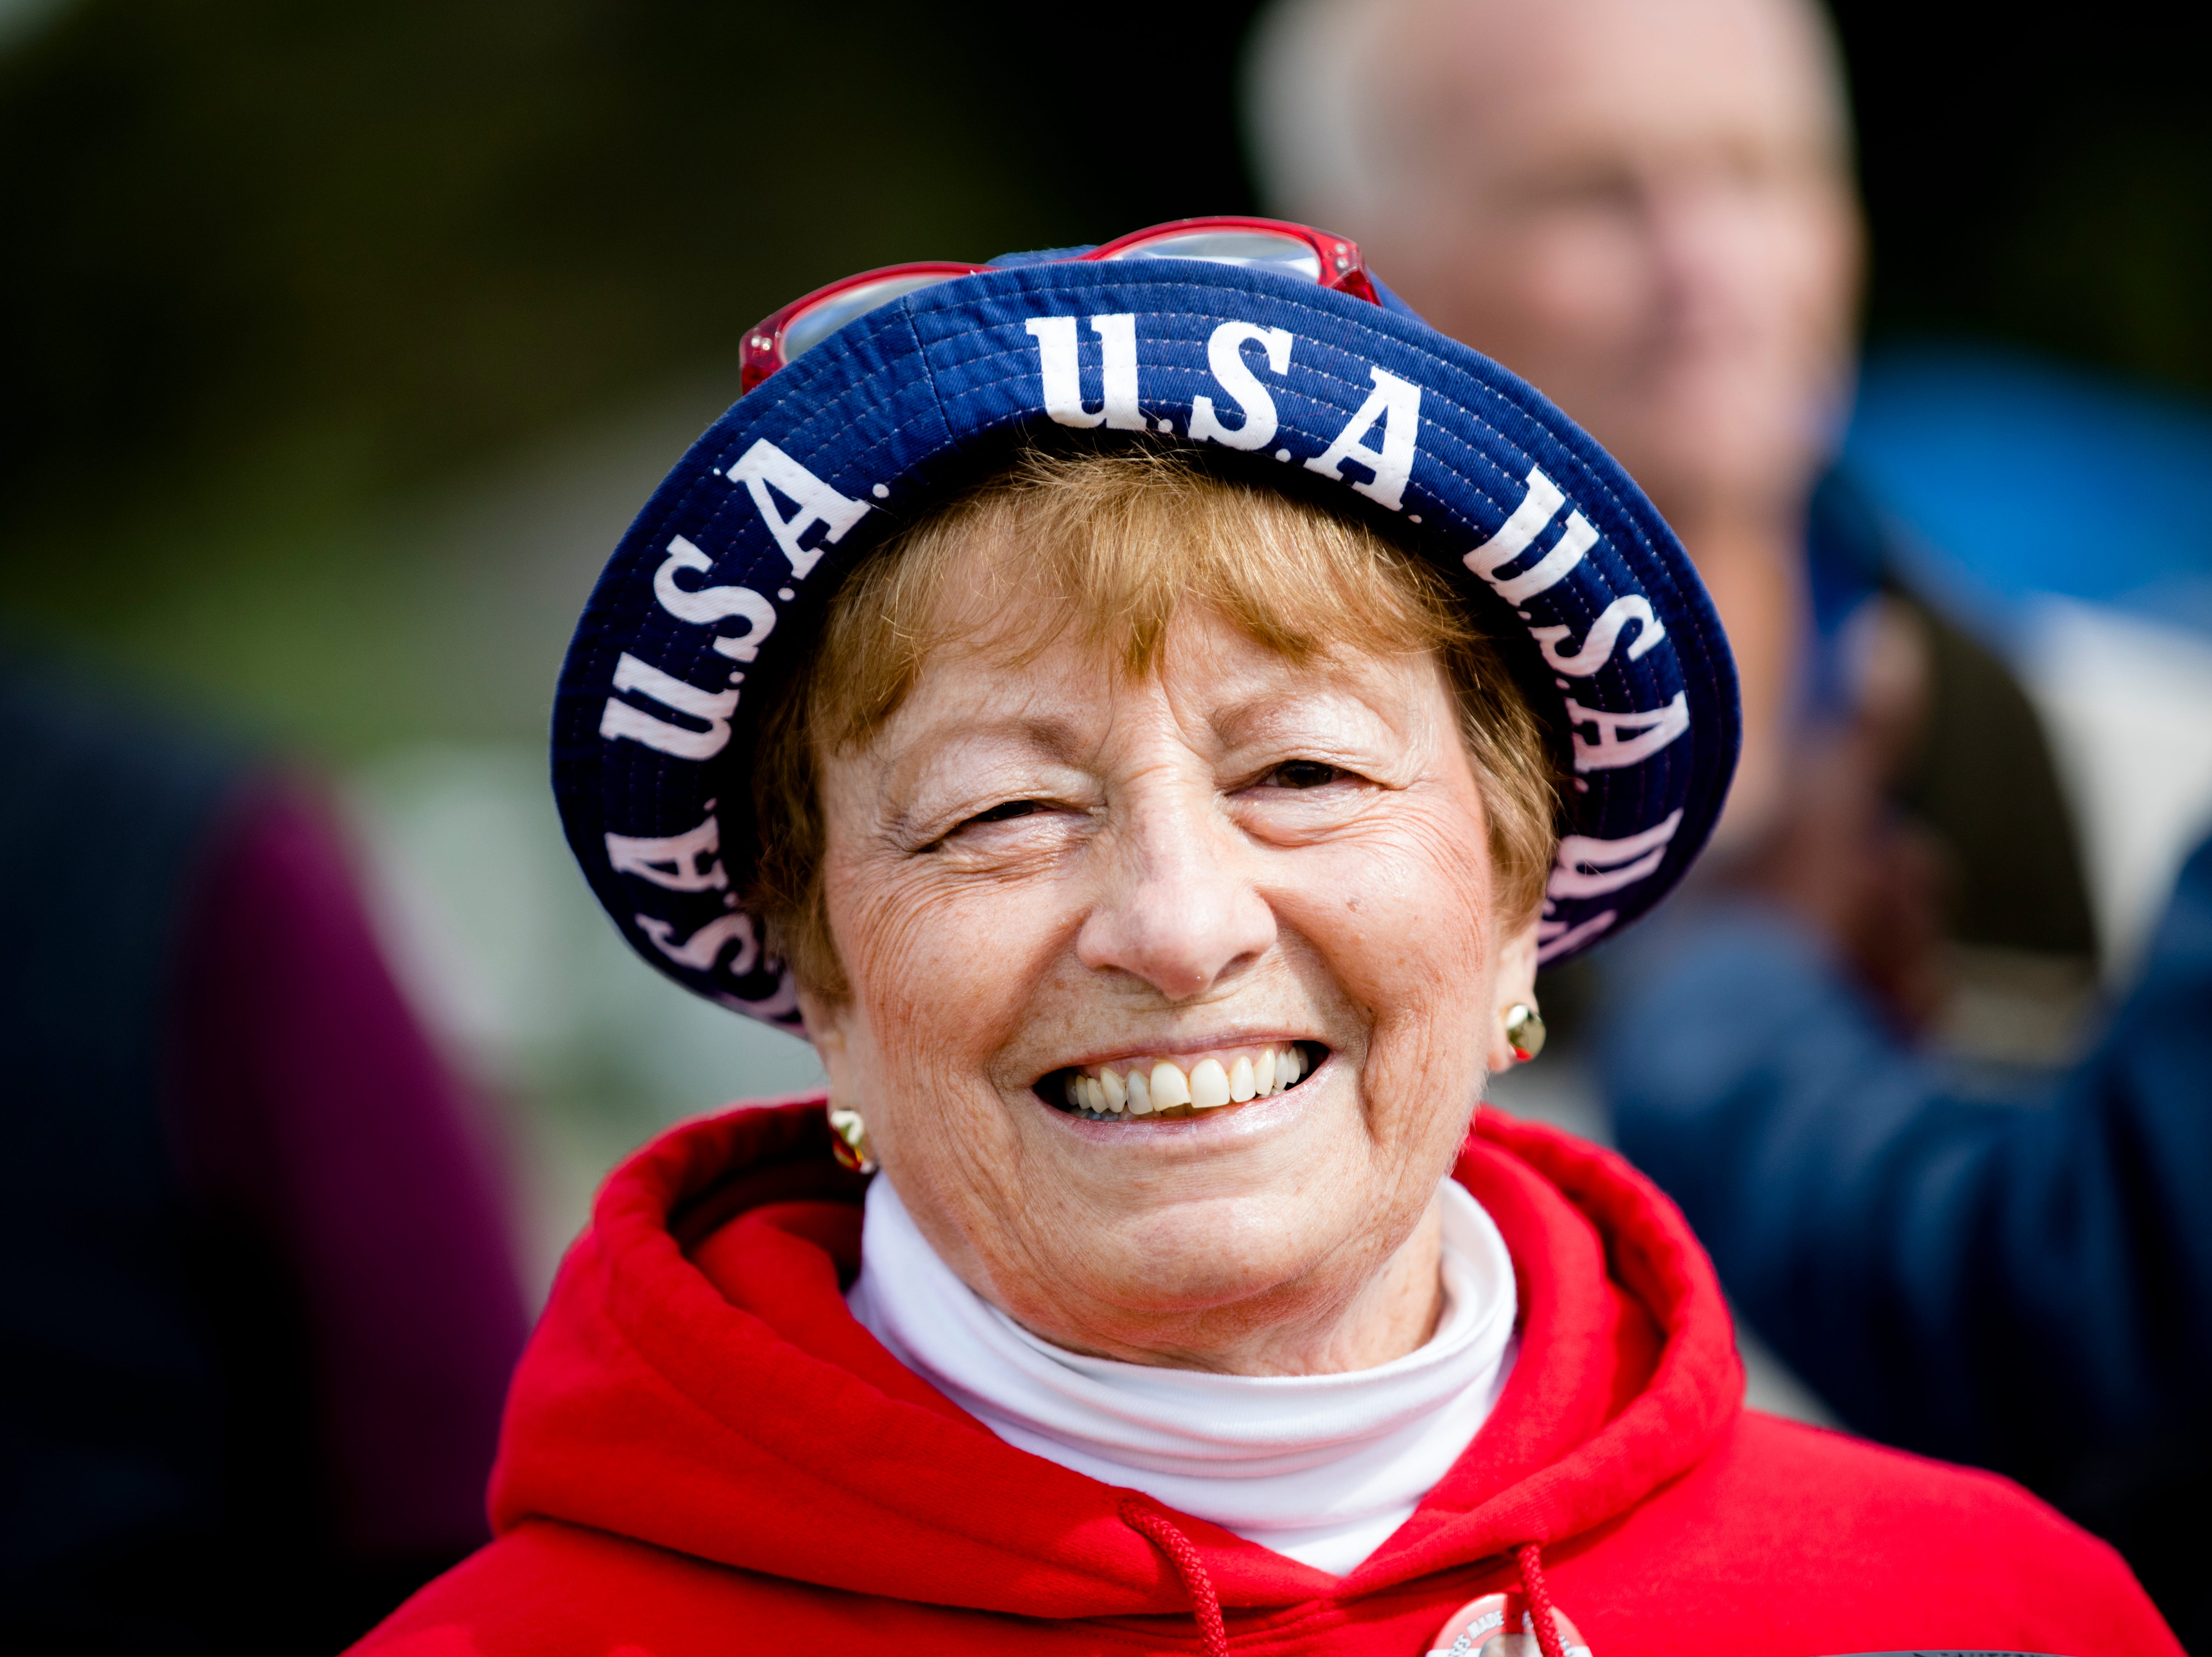 Carol Brown, of Landon, Ohio, waits in line for President Donald J. Trump's Make America Great Again Rally in Lebanon, Ohio, on Friday, Oct. 12, 2018.